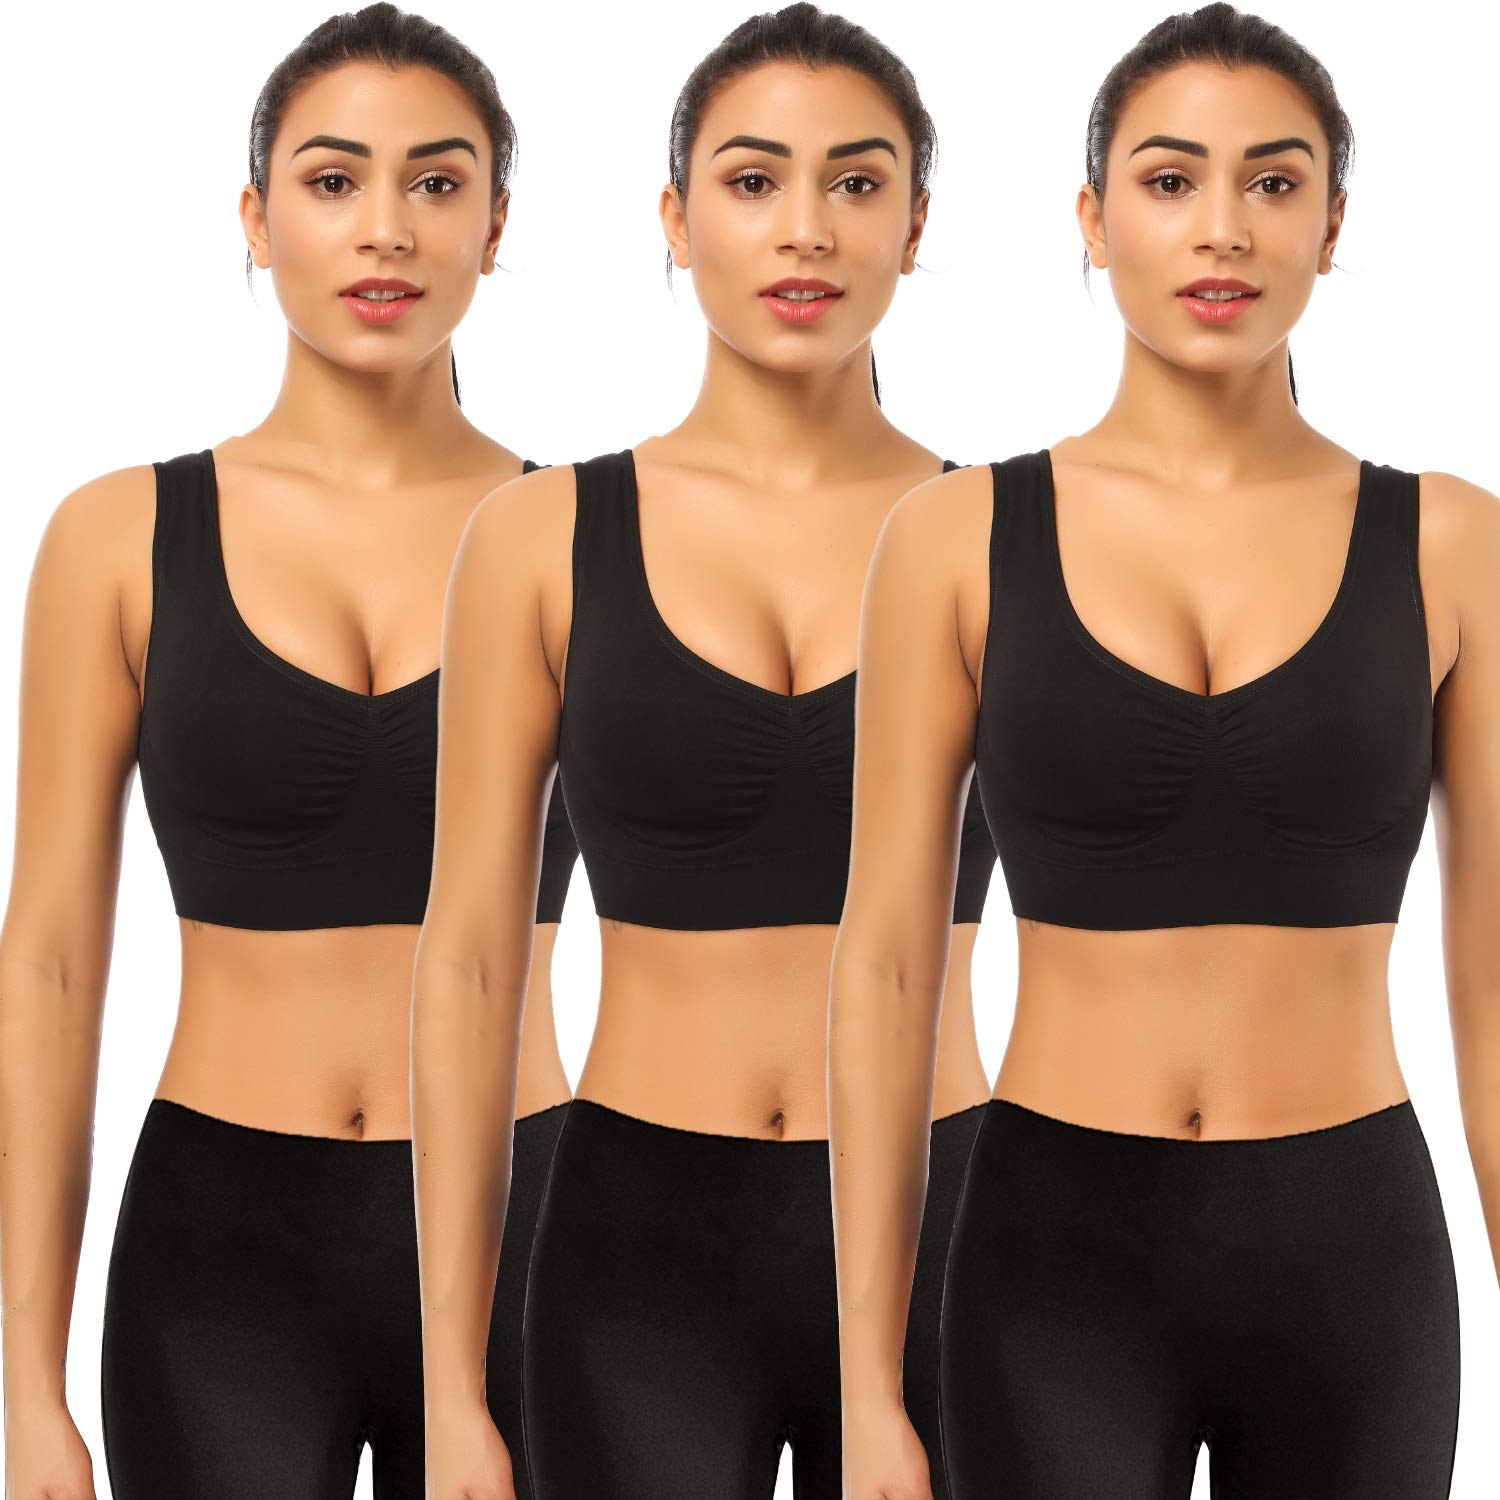 BESTENA Sports Bras for Women, 3 Pack Seamless Comfortable Yoga Bra with Removable Pads(Black,Medium) by BESTENA